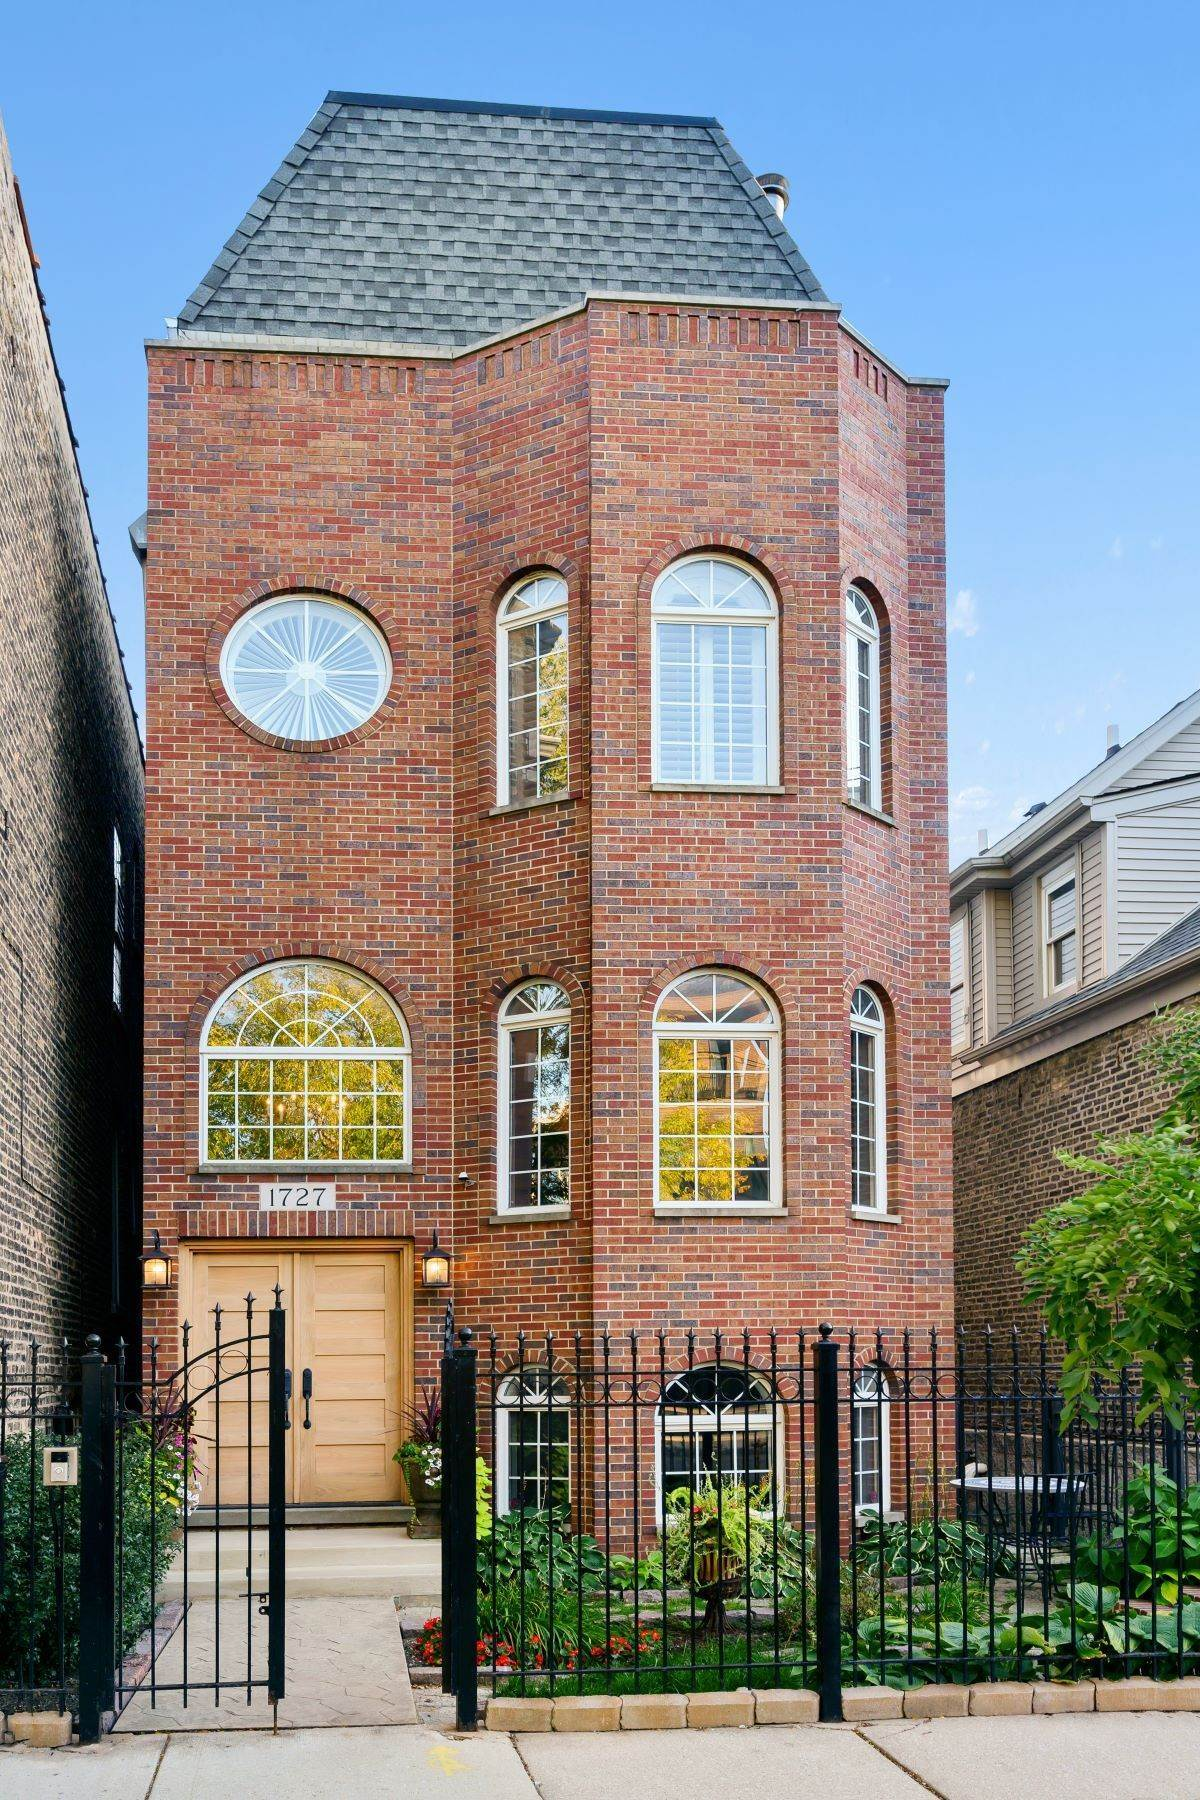 Property para Venda às Stunning Trilevel with Tesla Charger 1727 W Julian Street Chicago, Illinois 60622 Estados Unidos